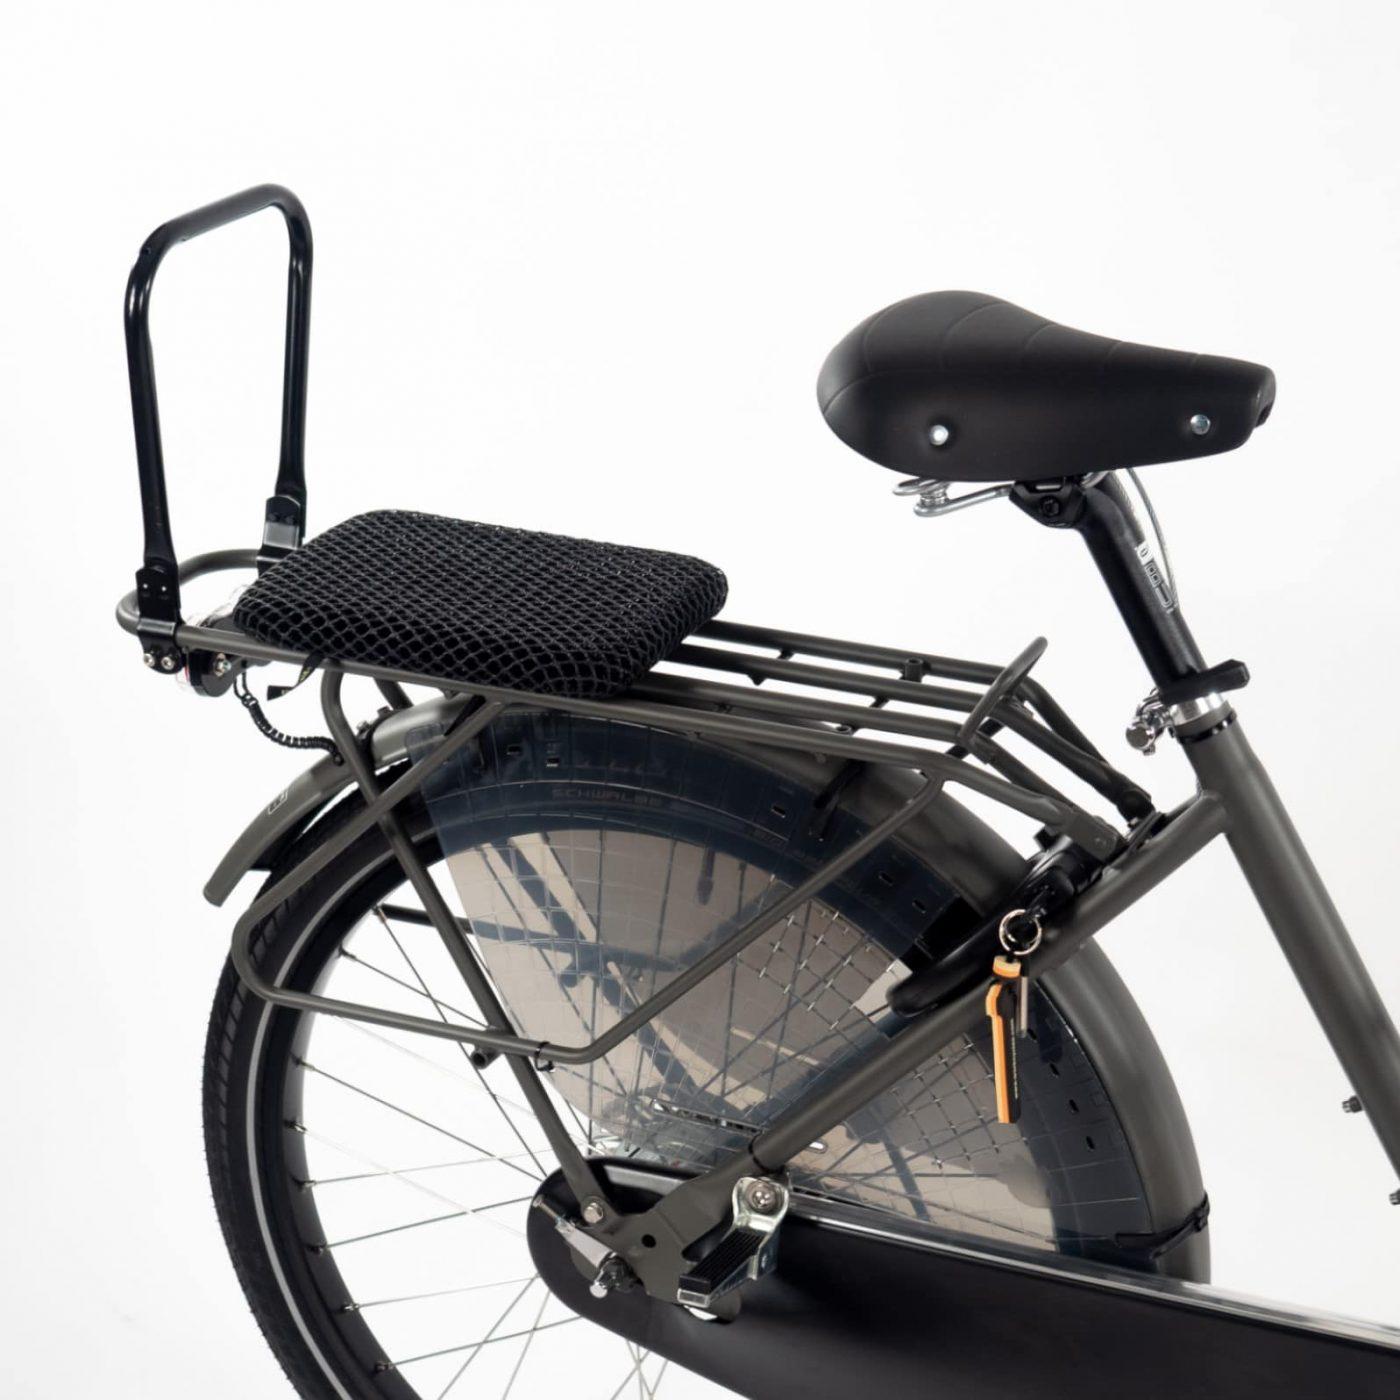 This is the single seater version of our popular Fr8 double seat and is suitable for a child of 5+ years. The Fr8 single seat comes complete with backrest, mesh cushion, strong frame mounted footrests and fender mounted rear wheel footguards (at this age a seat belt is not necessary). The mesh cushion lets rain water pass through and drys quickly, the backrest can be folded down. When mounted on our long rear carrier the Fr8 single seat can be used together with our special LU panniers. It's not possible to mount an additional seat on the long rear carrier in front or behind the Fr8 single seat.